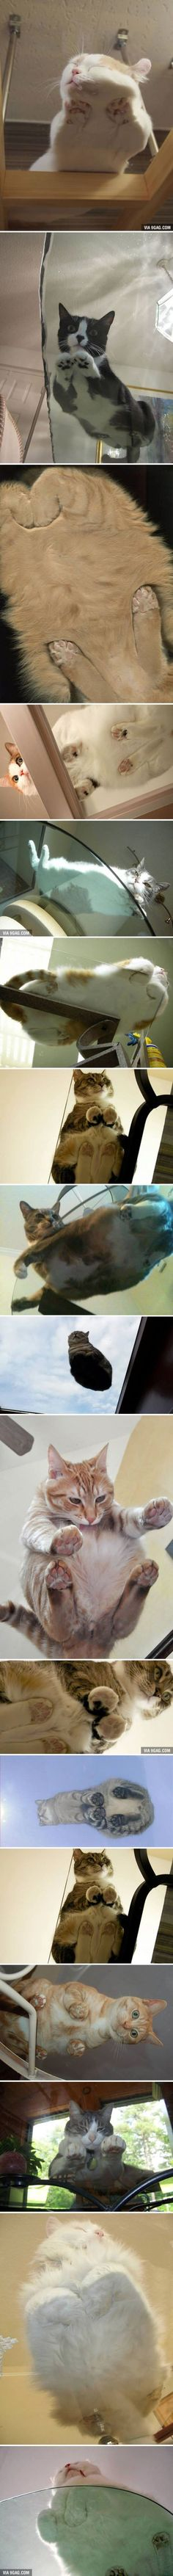 17 Pictures Of Cats On Glass Tap the link for an awesome selection cat and kitten products for your feline companion!